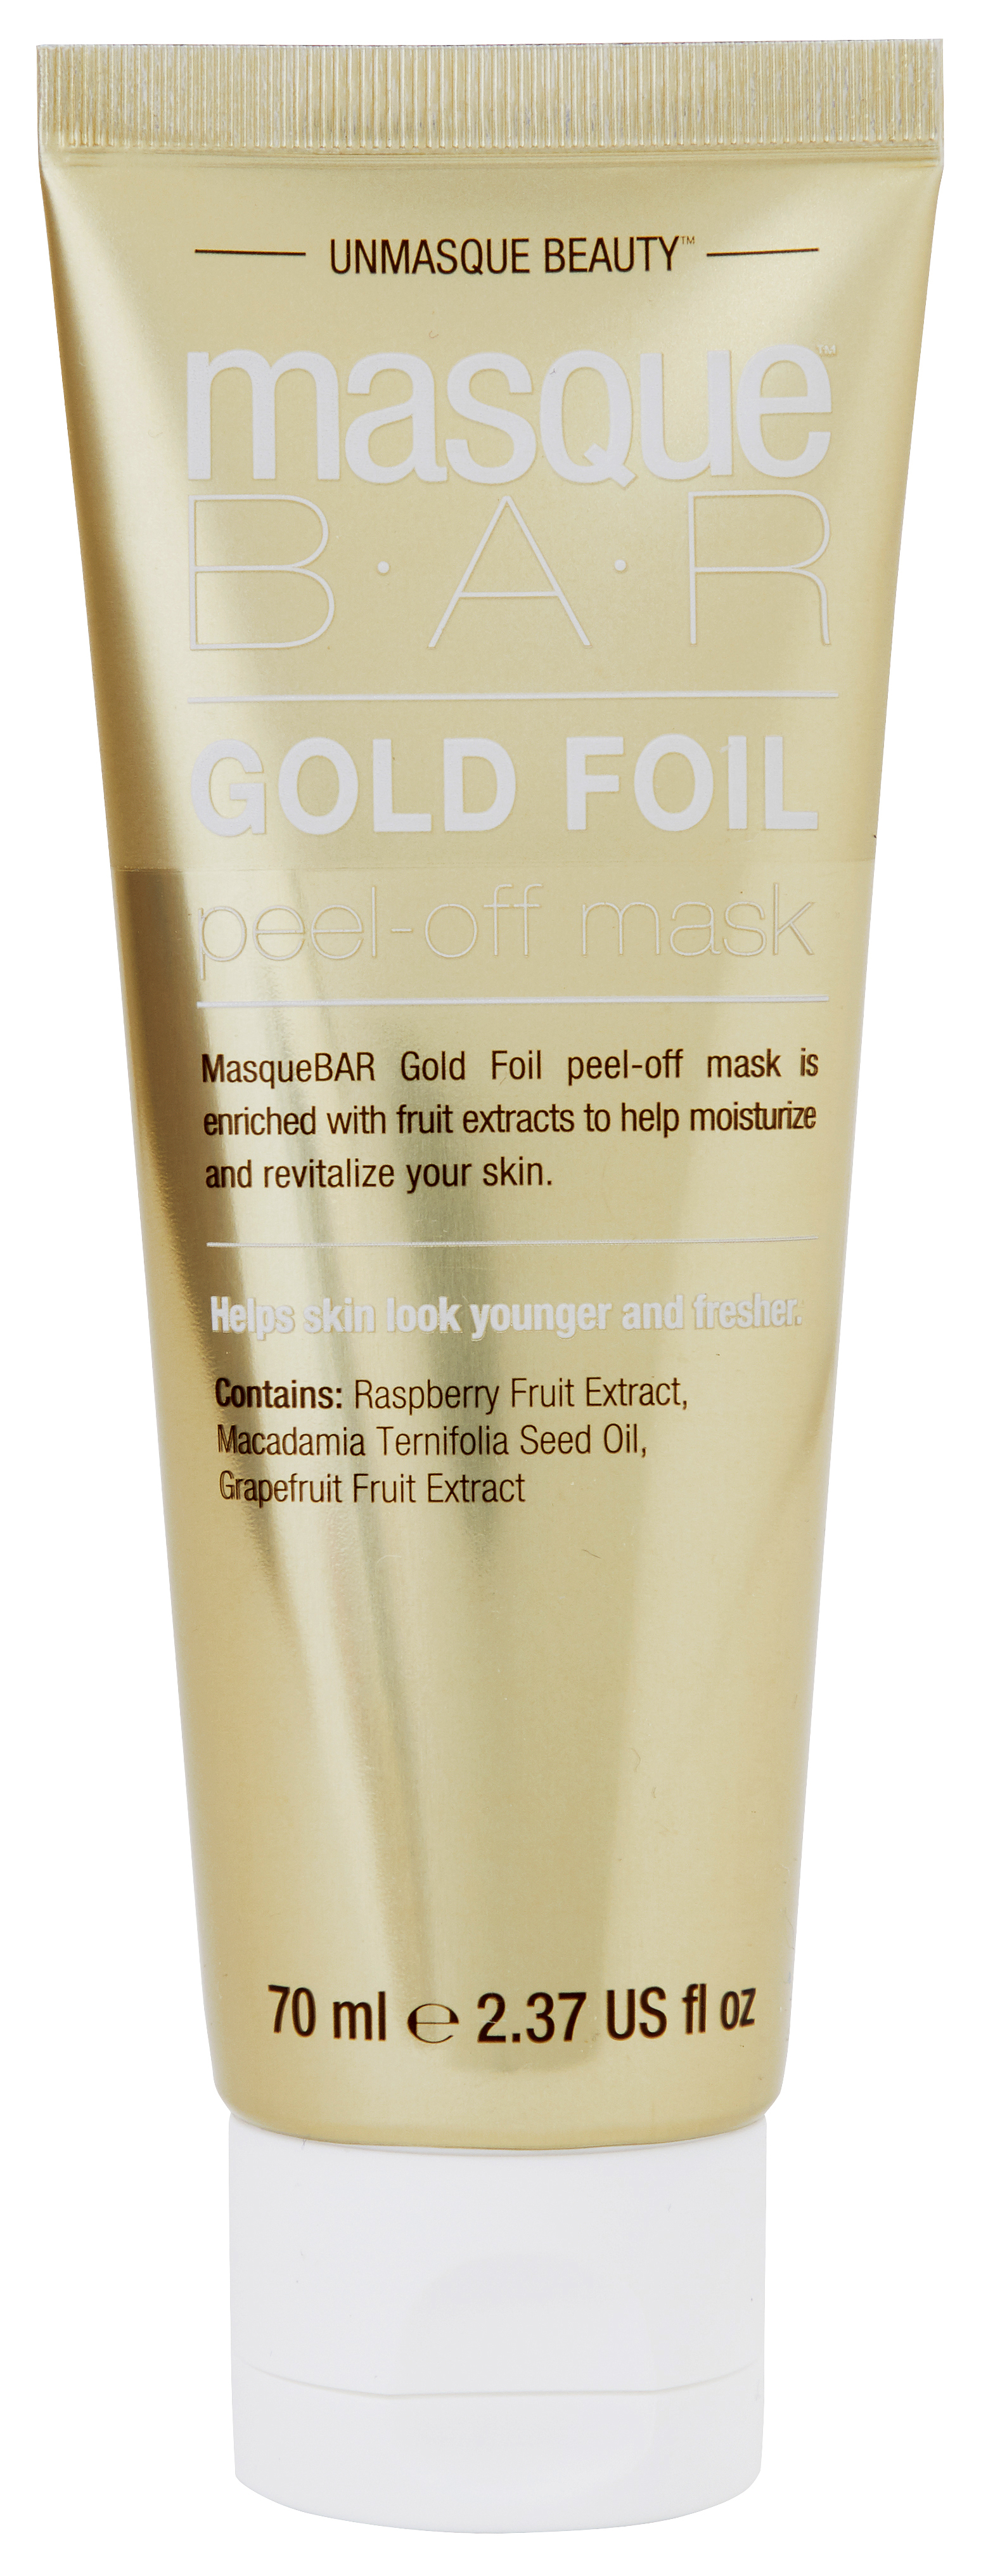 Gold Foil Peel-Off Mask Tube 70 ml